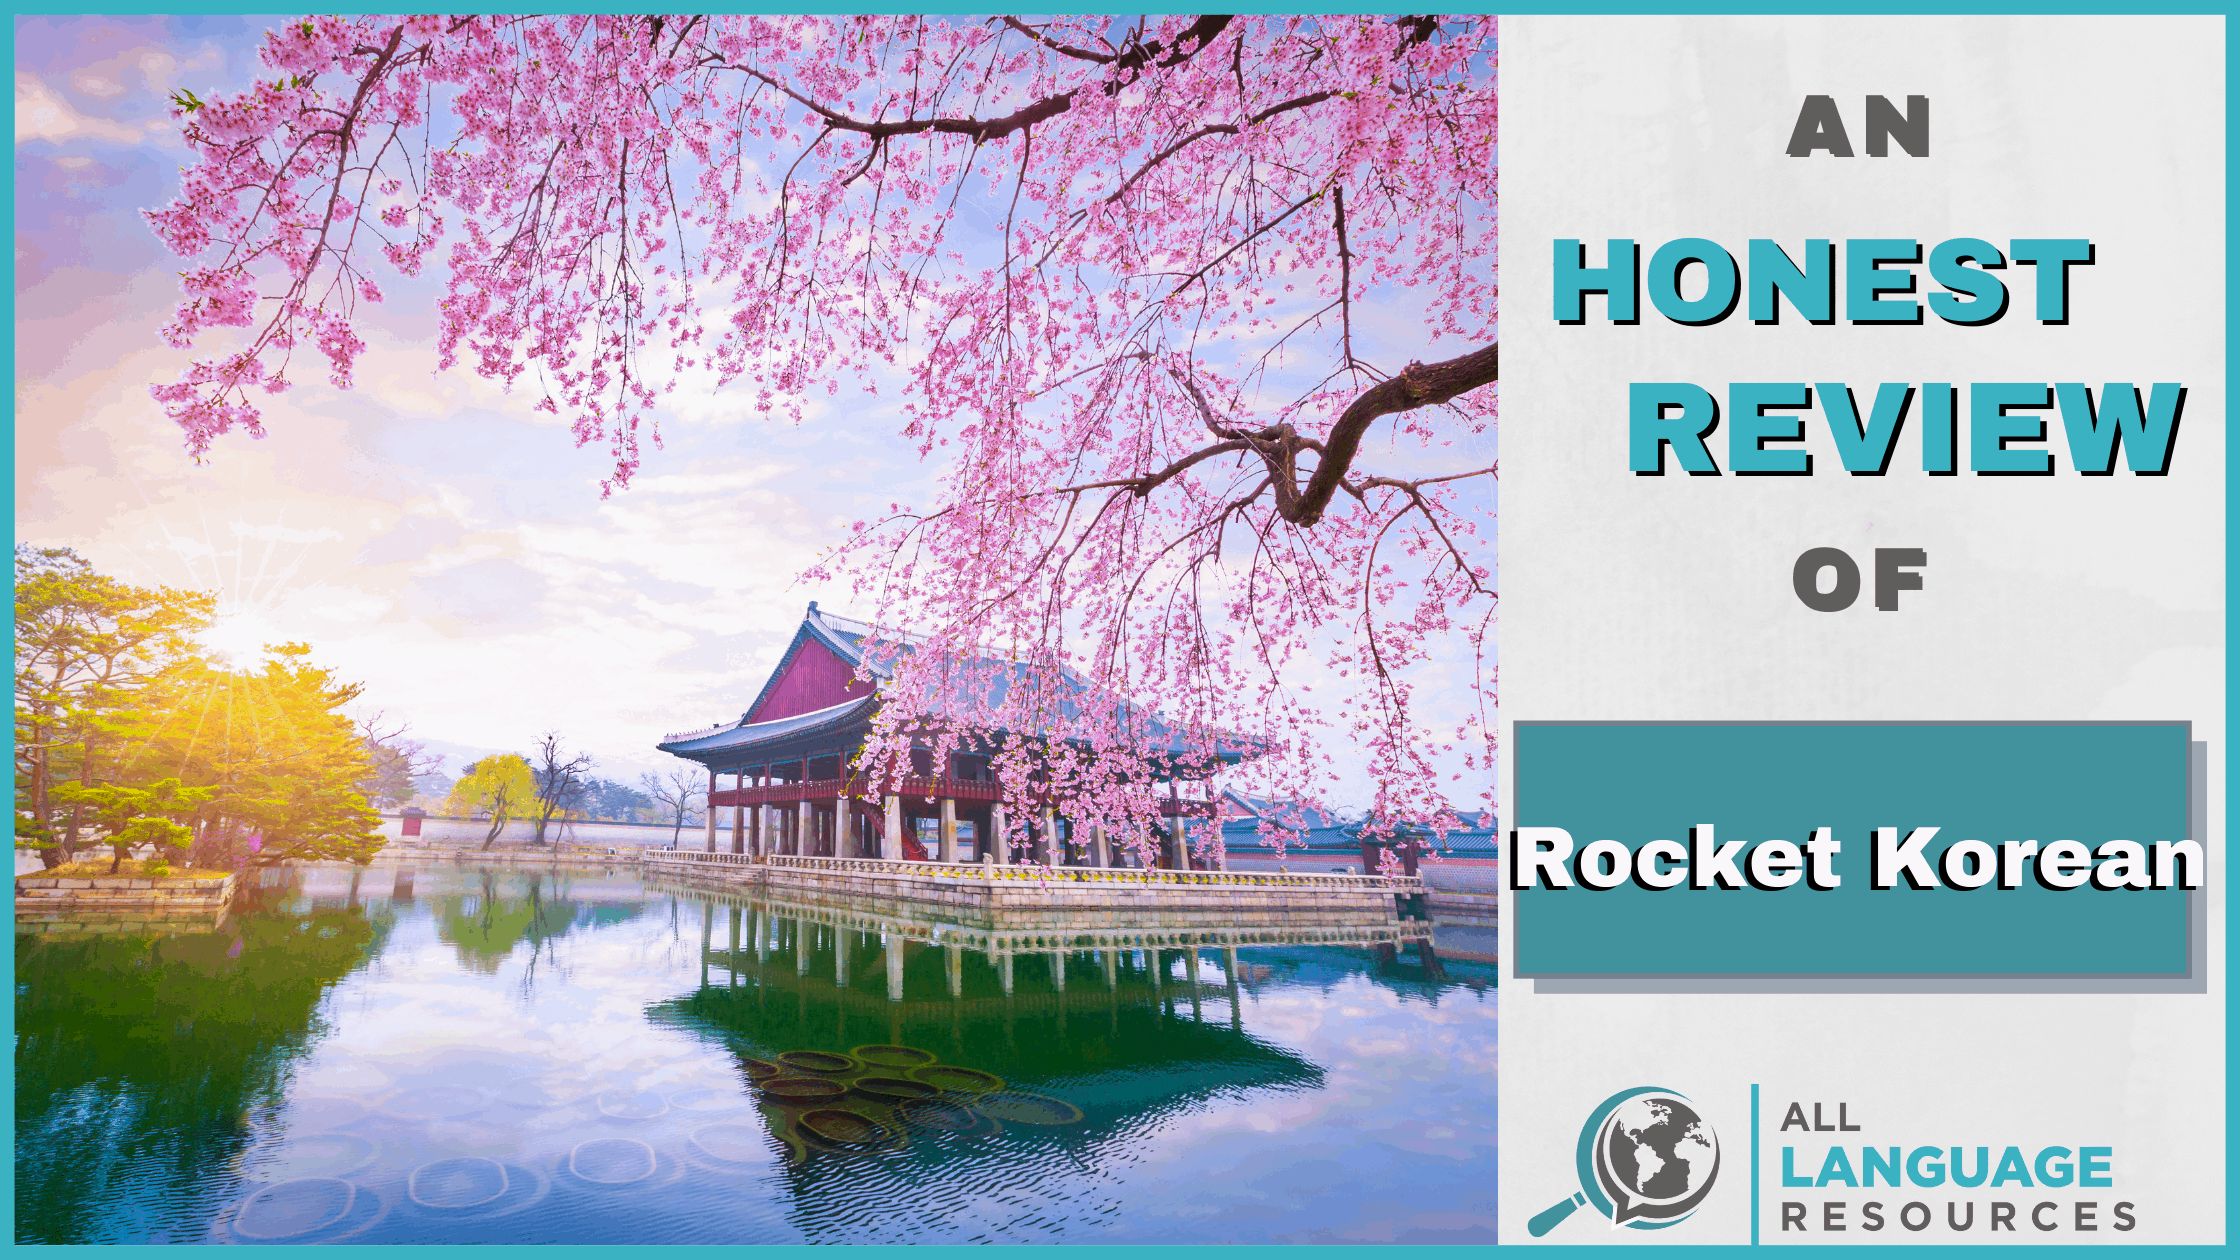 An Honest Review of Rocket Korean With Image of Korean Scenery